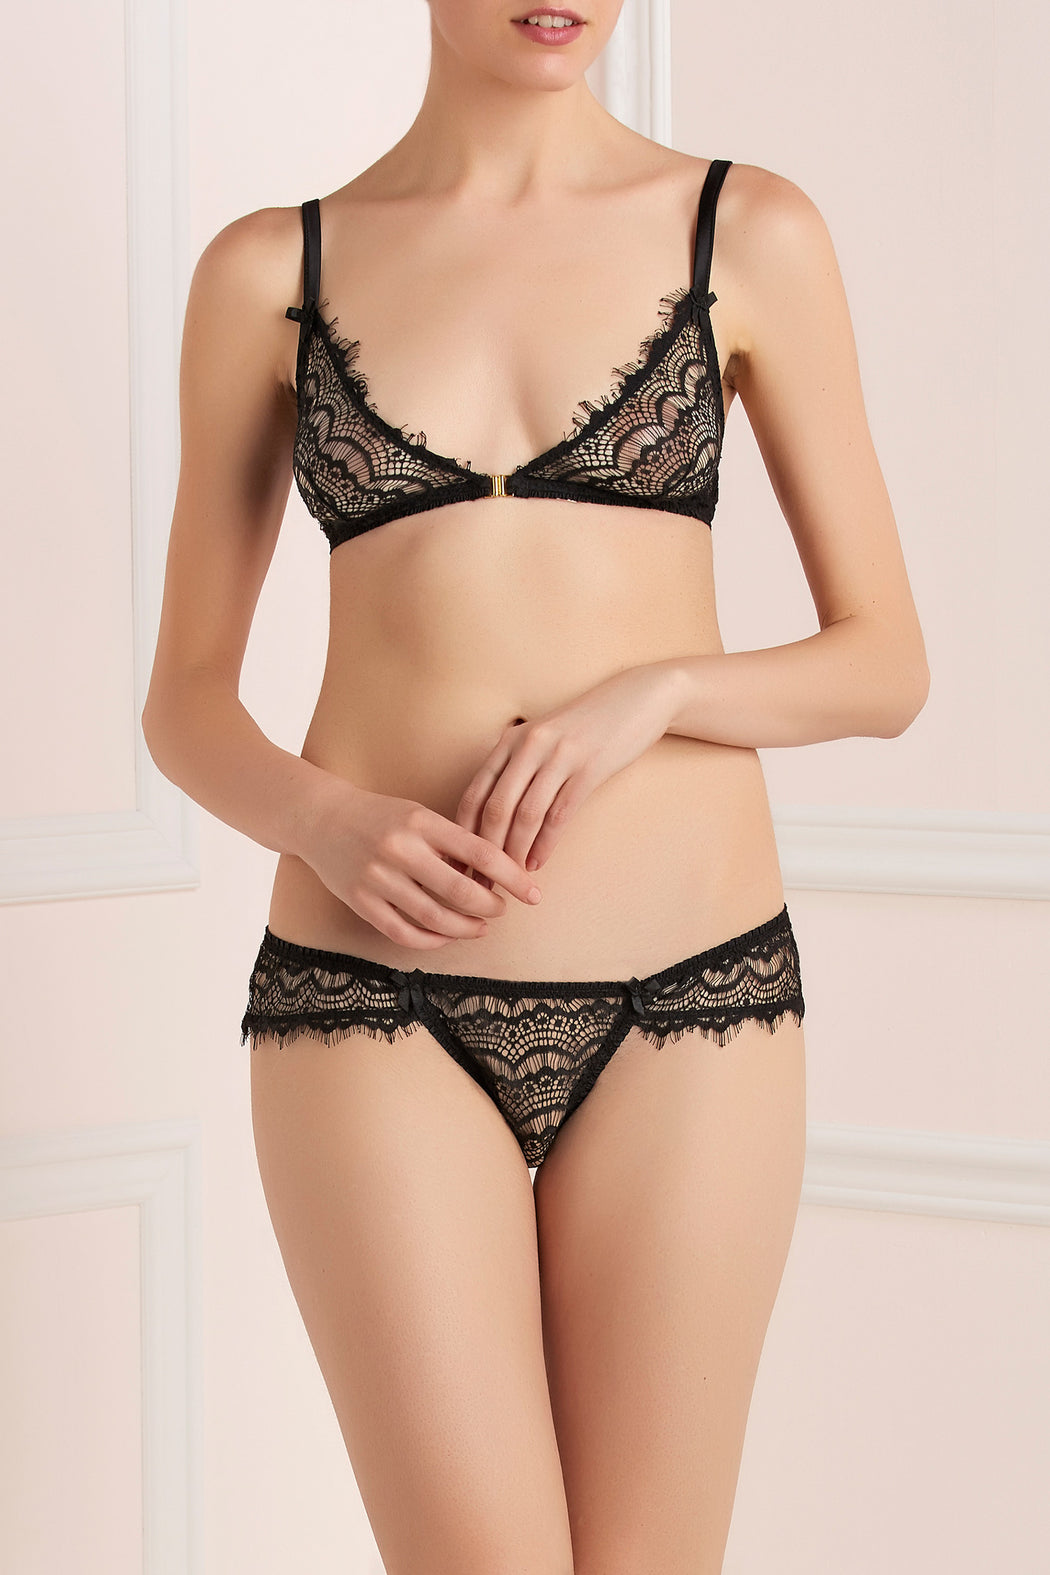 Mimi Holliday Bisou pearl lace black boyshort workingirls lingerie